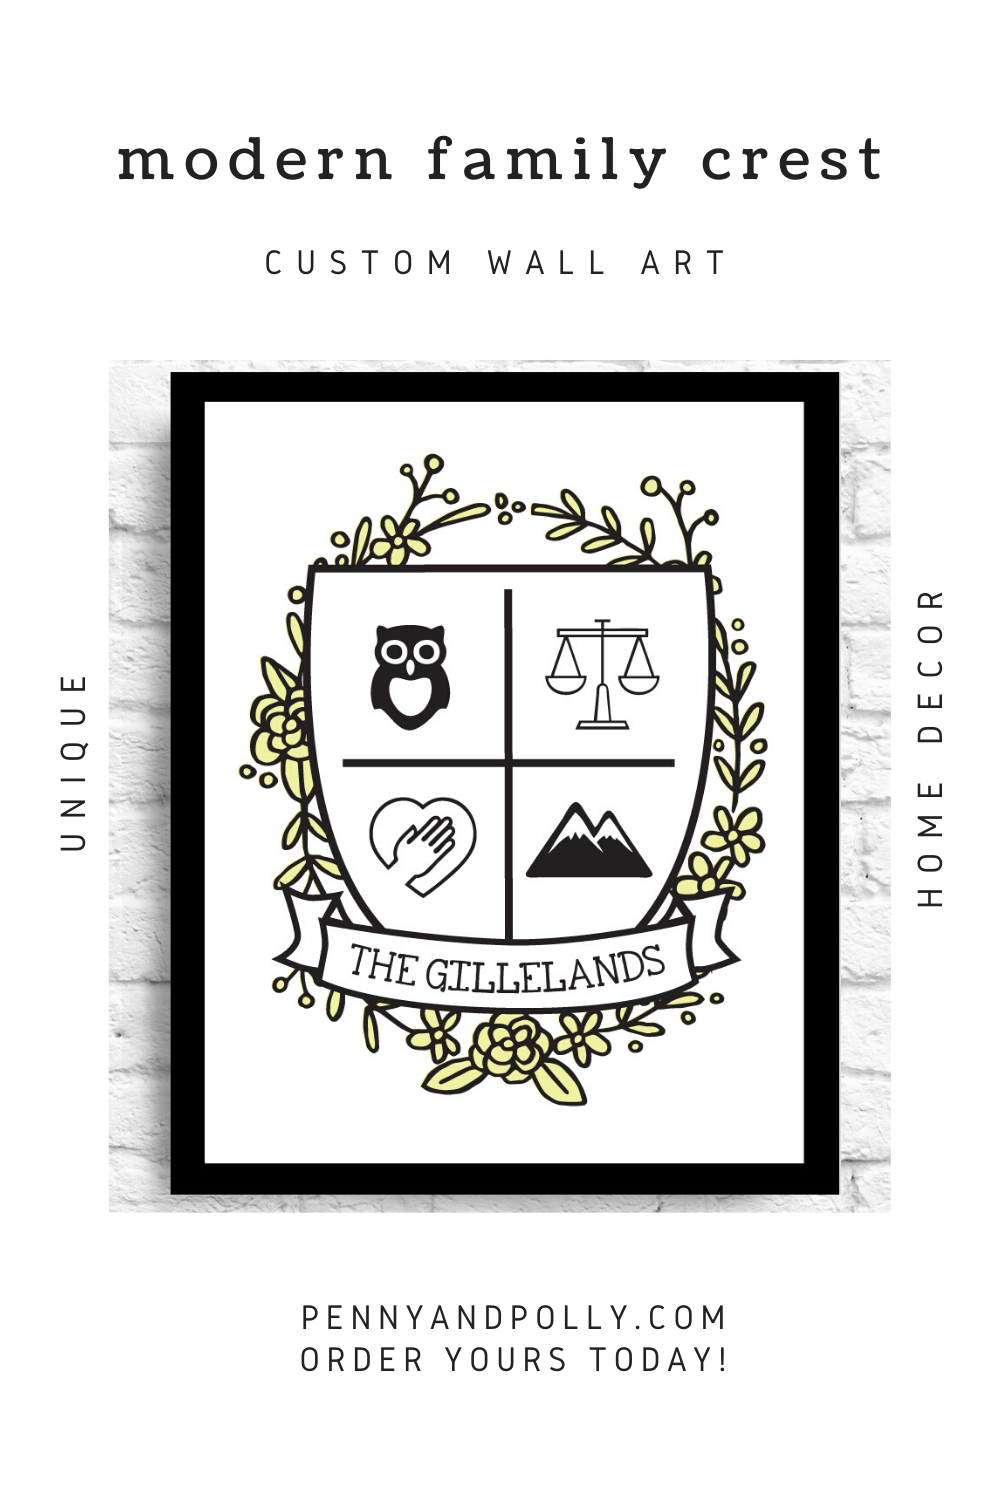 Modern Family Crest Choose Your Own Colors And Quote Personalized Family Poster Kids Names Anniversary Date Pennyandpolly In 2020 Family Crest Family Poster Modern Family